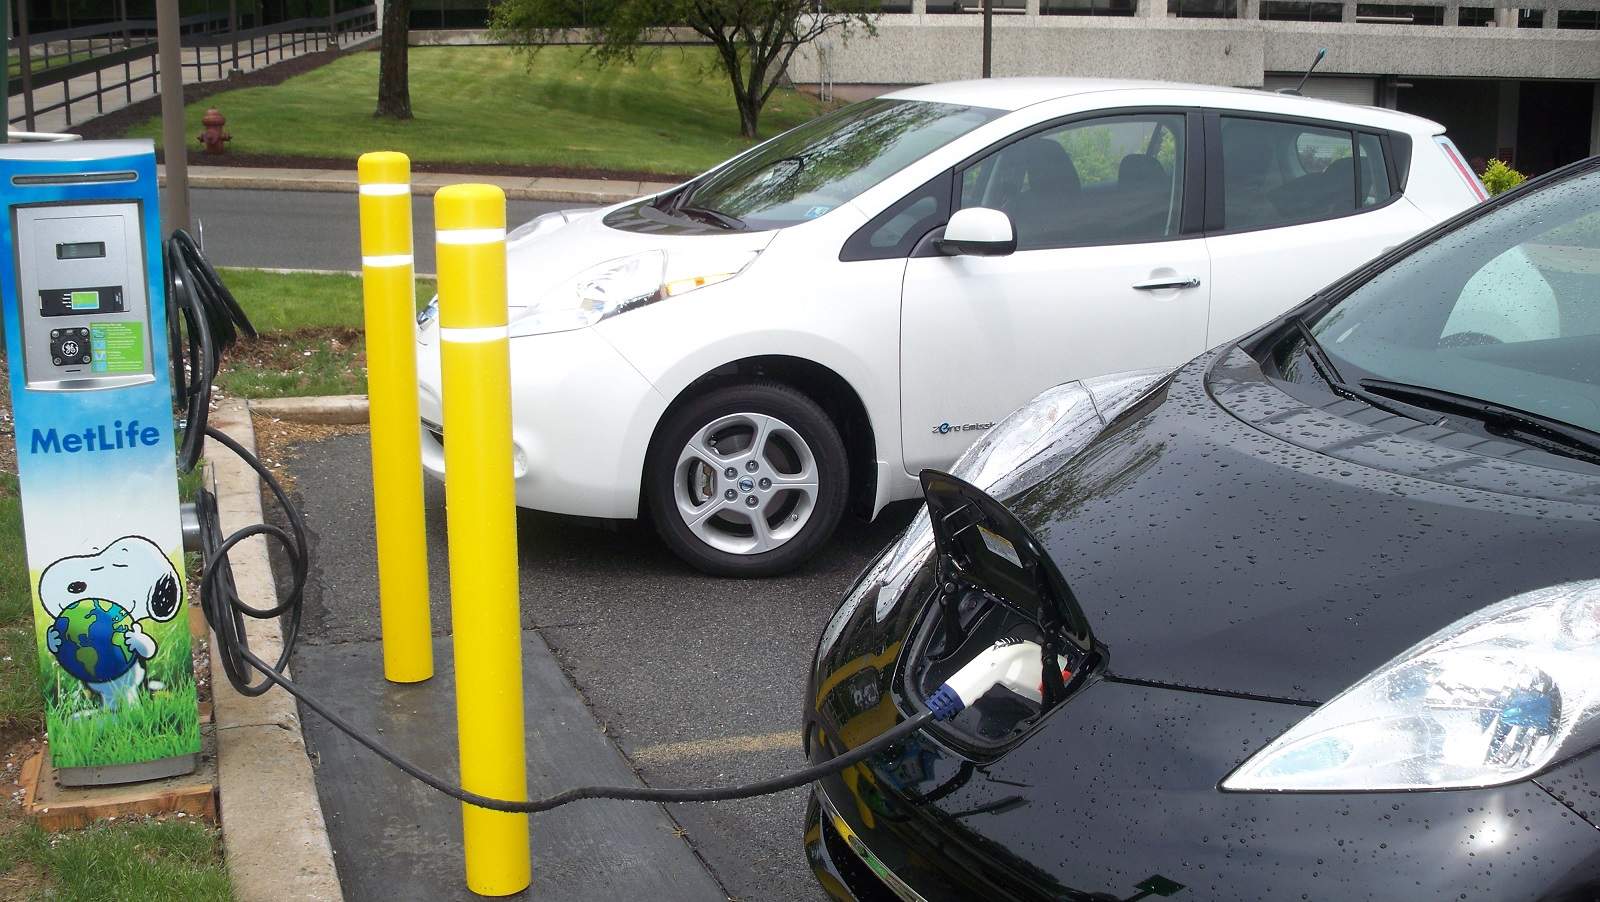 Scrap Car Buyers >> Electric-Car Charging Station Blocked? Get An Extension Cord!